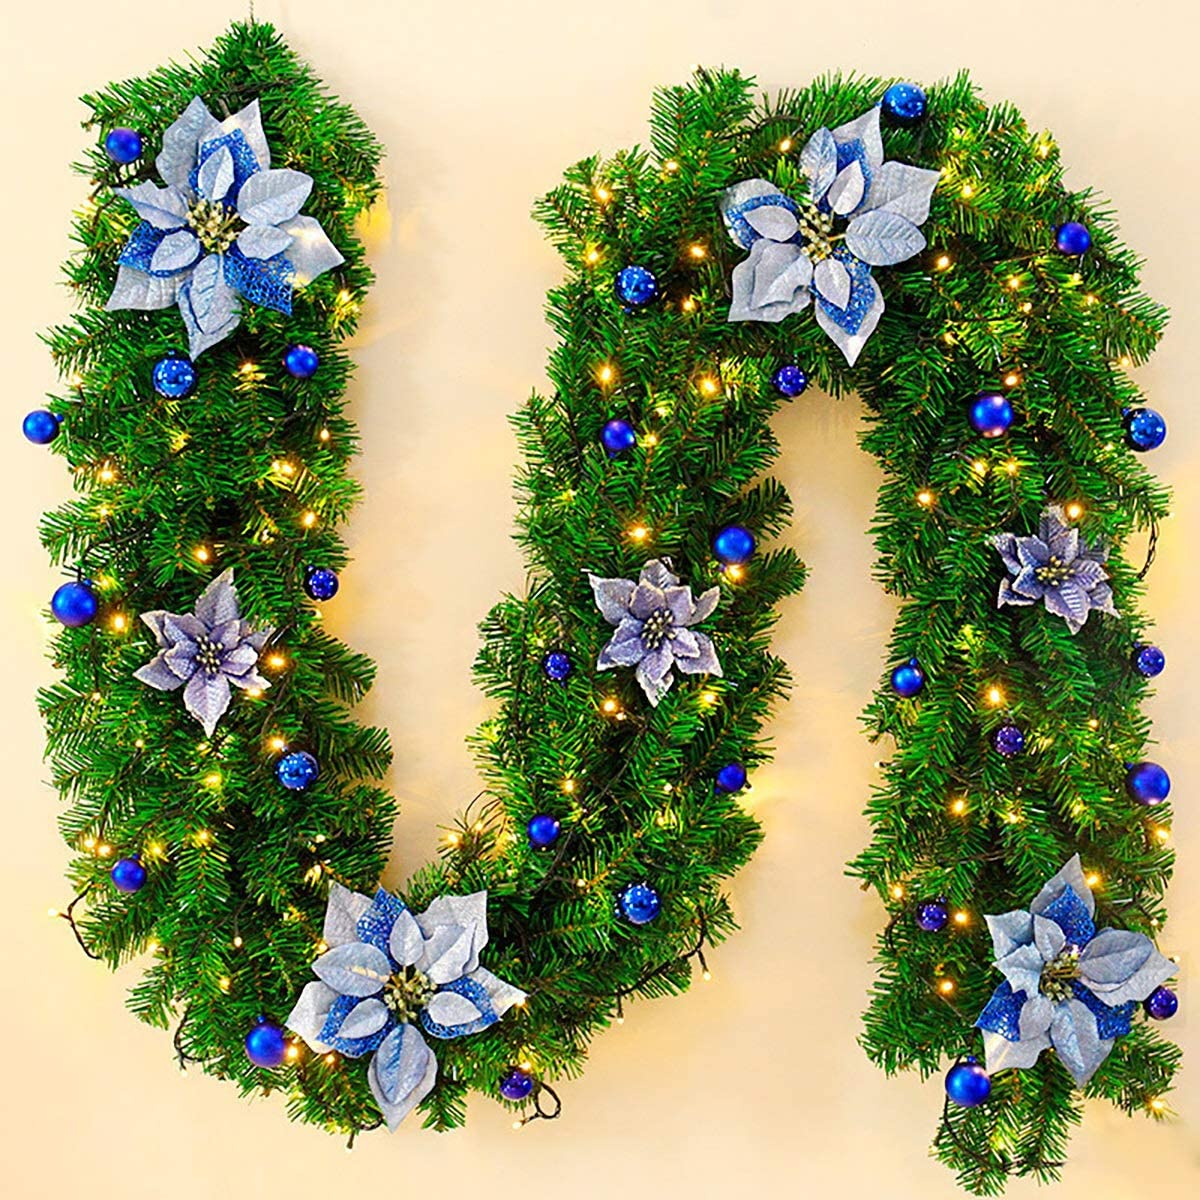 YHKGHEDD Christmas Garland Artificial Decor Max Ranking TOP14 43% OFF Stairs D 2.7M Wall -